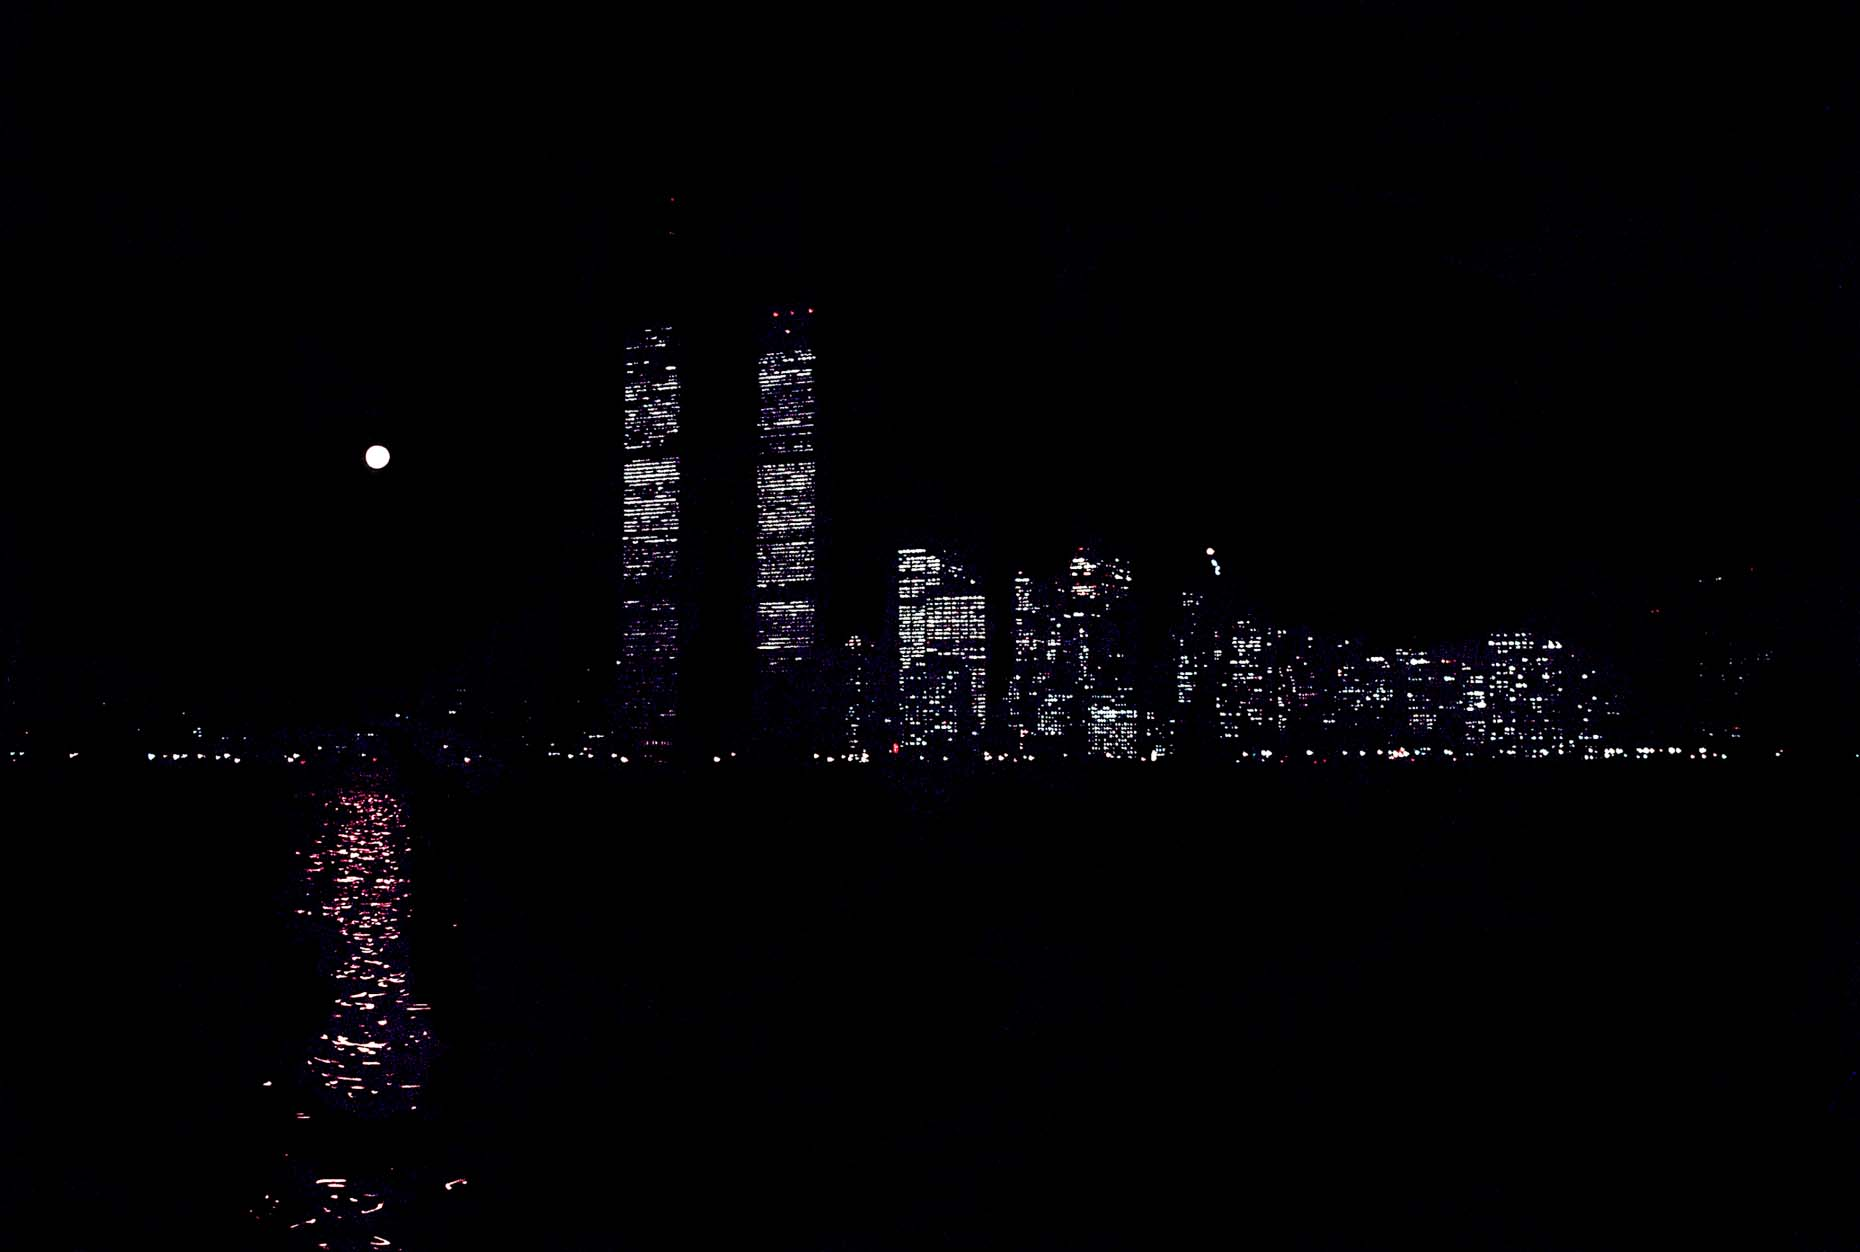 06_View of Lower Manhattan from Exchange Place, Jersey City, New Jersey, 1980_-DUP.jpg